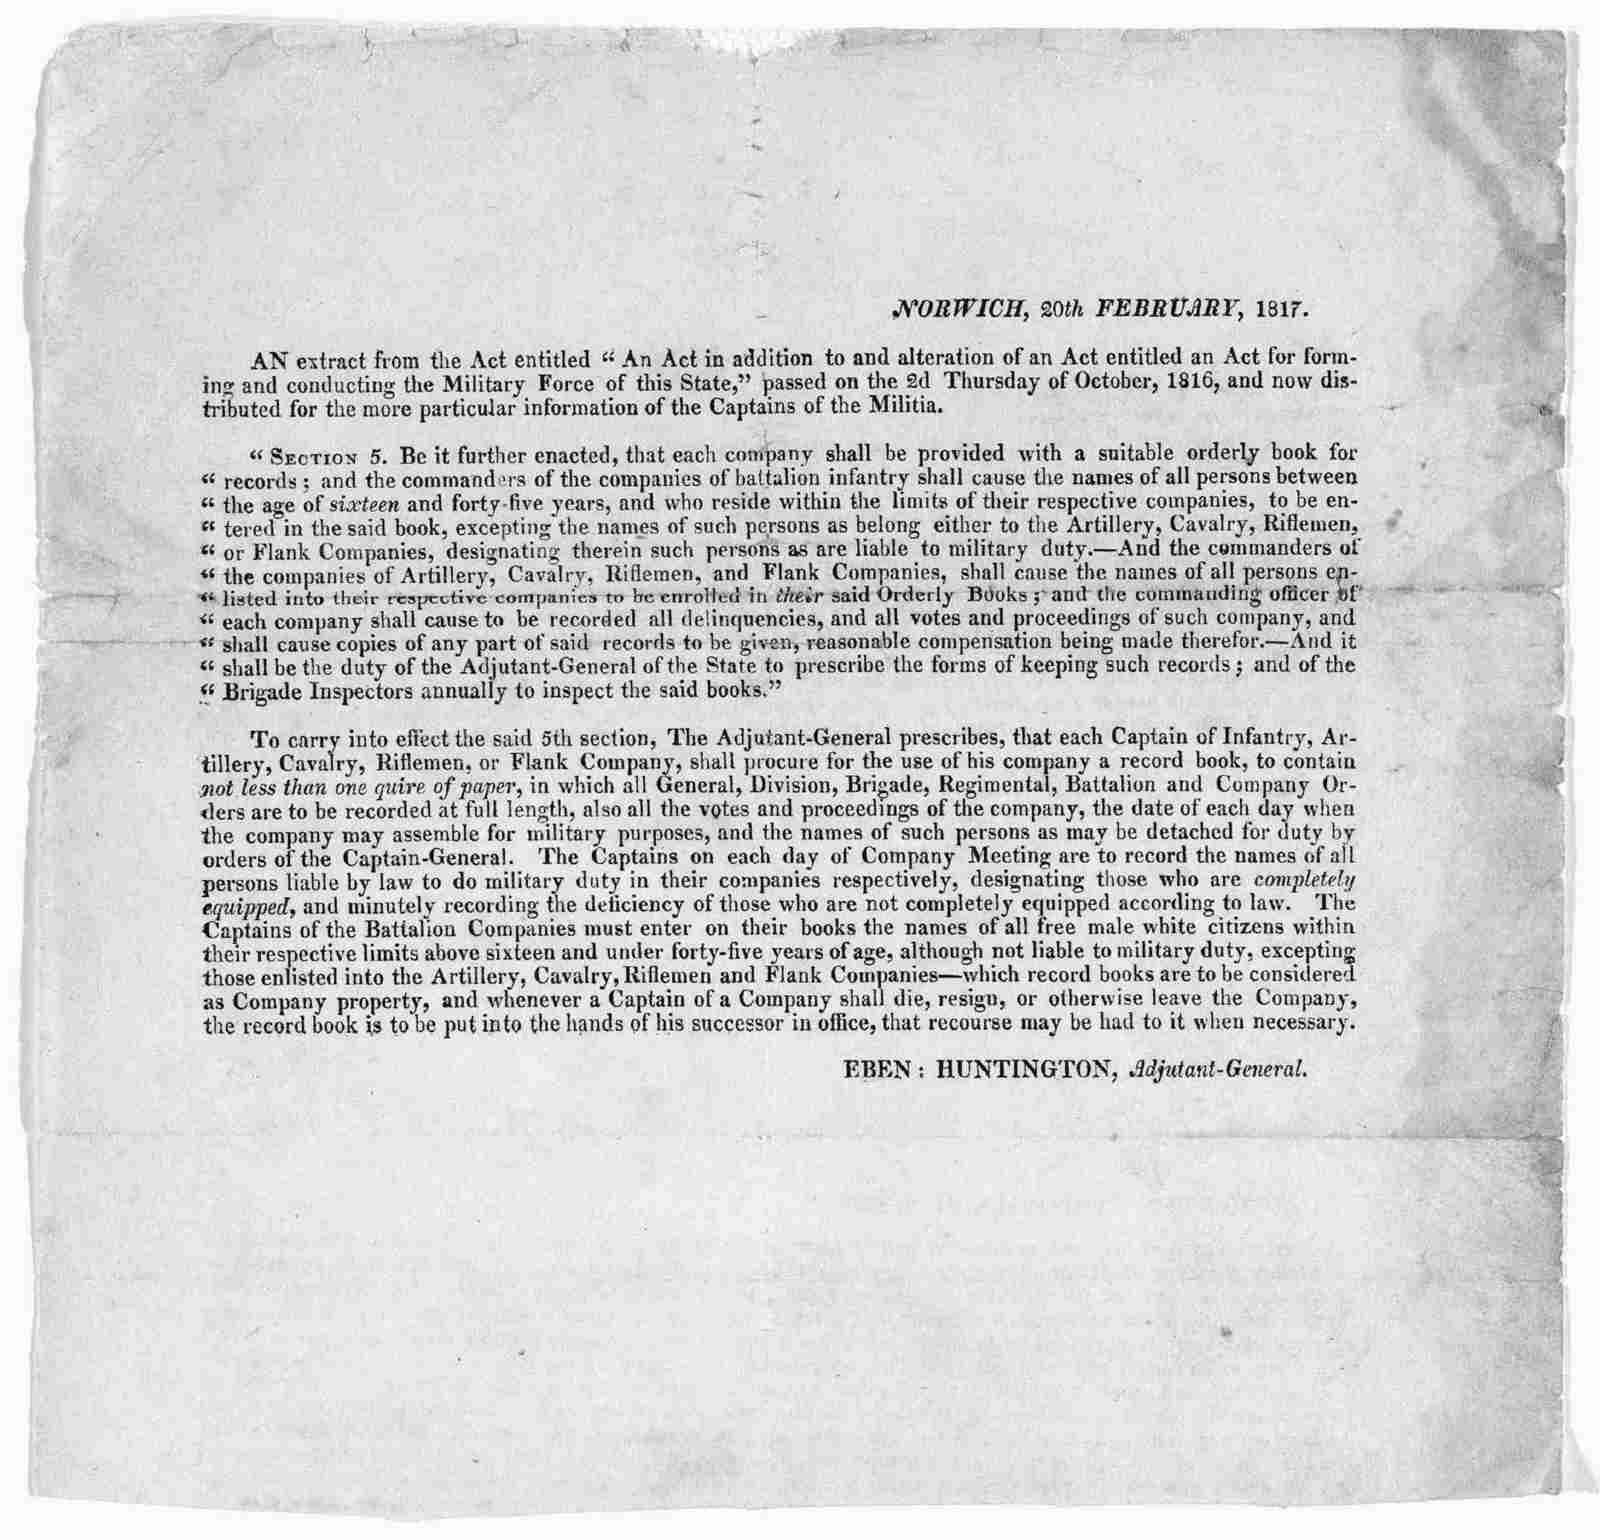 """Norwich 20th, February, 1817. An extract from the act entitled """"An act in addition to and alteration of an act entitled an Act for forming and conducting the military forces of this state,"""" passed on the 2d Thursday of October, 1816, and now dis"""